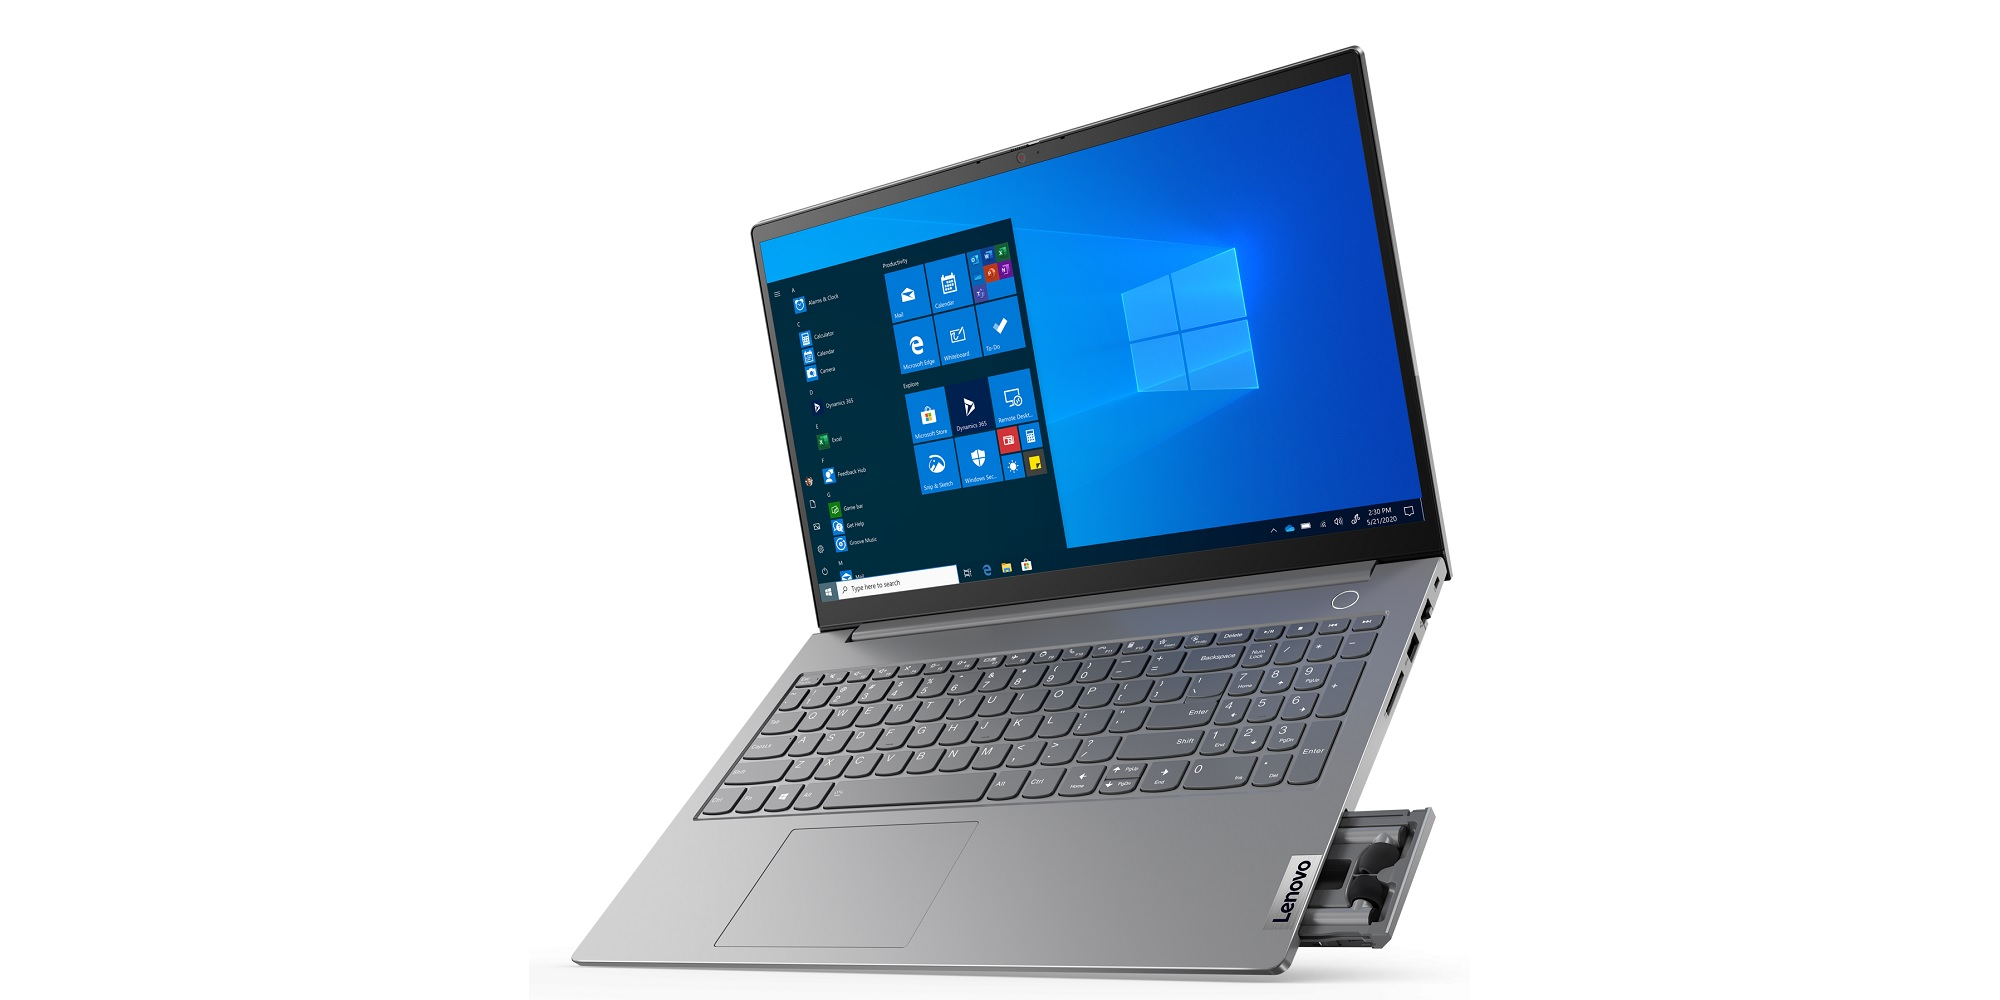 Lenovo ThinkBook 15 Gen 2 laptop